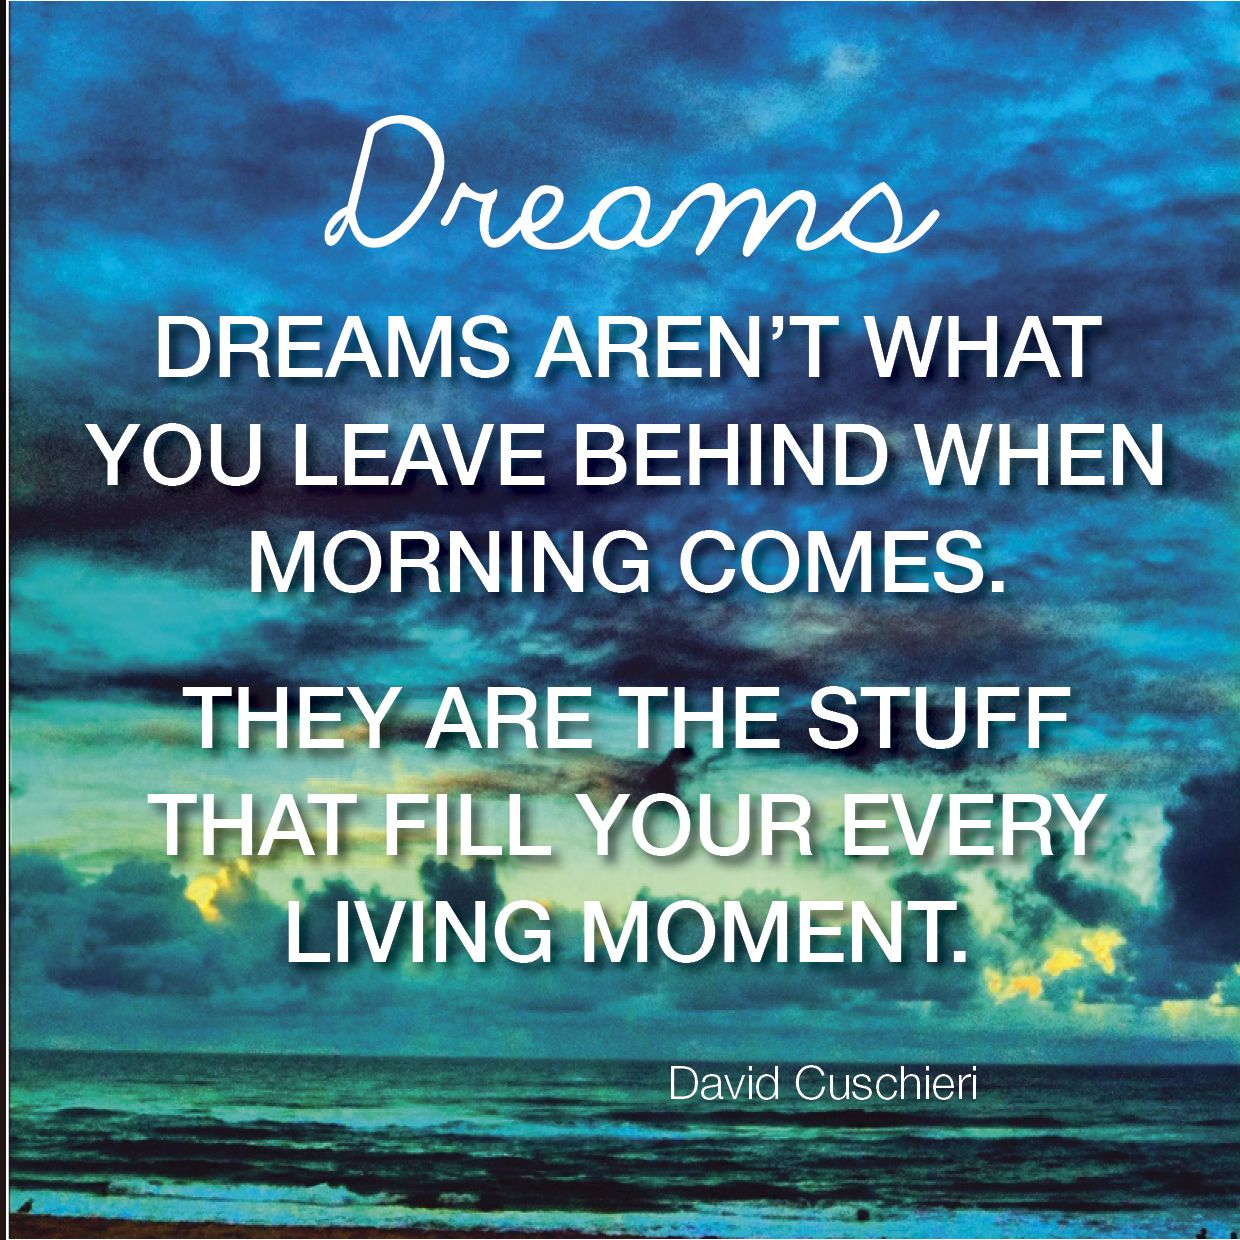 Great Spiritual Quotes About Life Dream Quotes And Sayings  Take Pleasure In Great Wise Words And